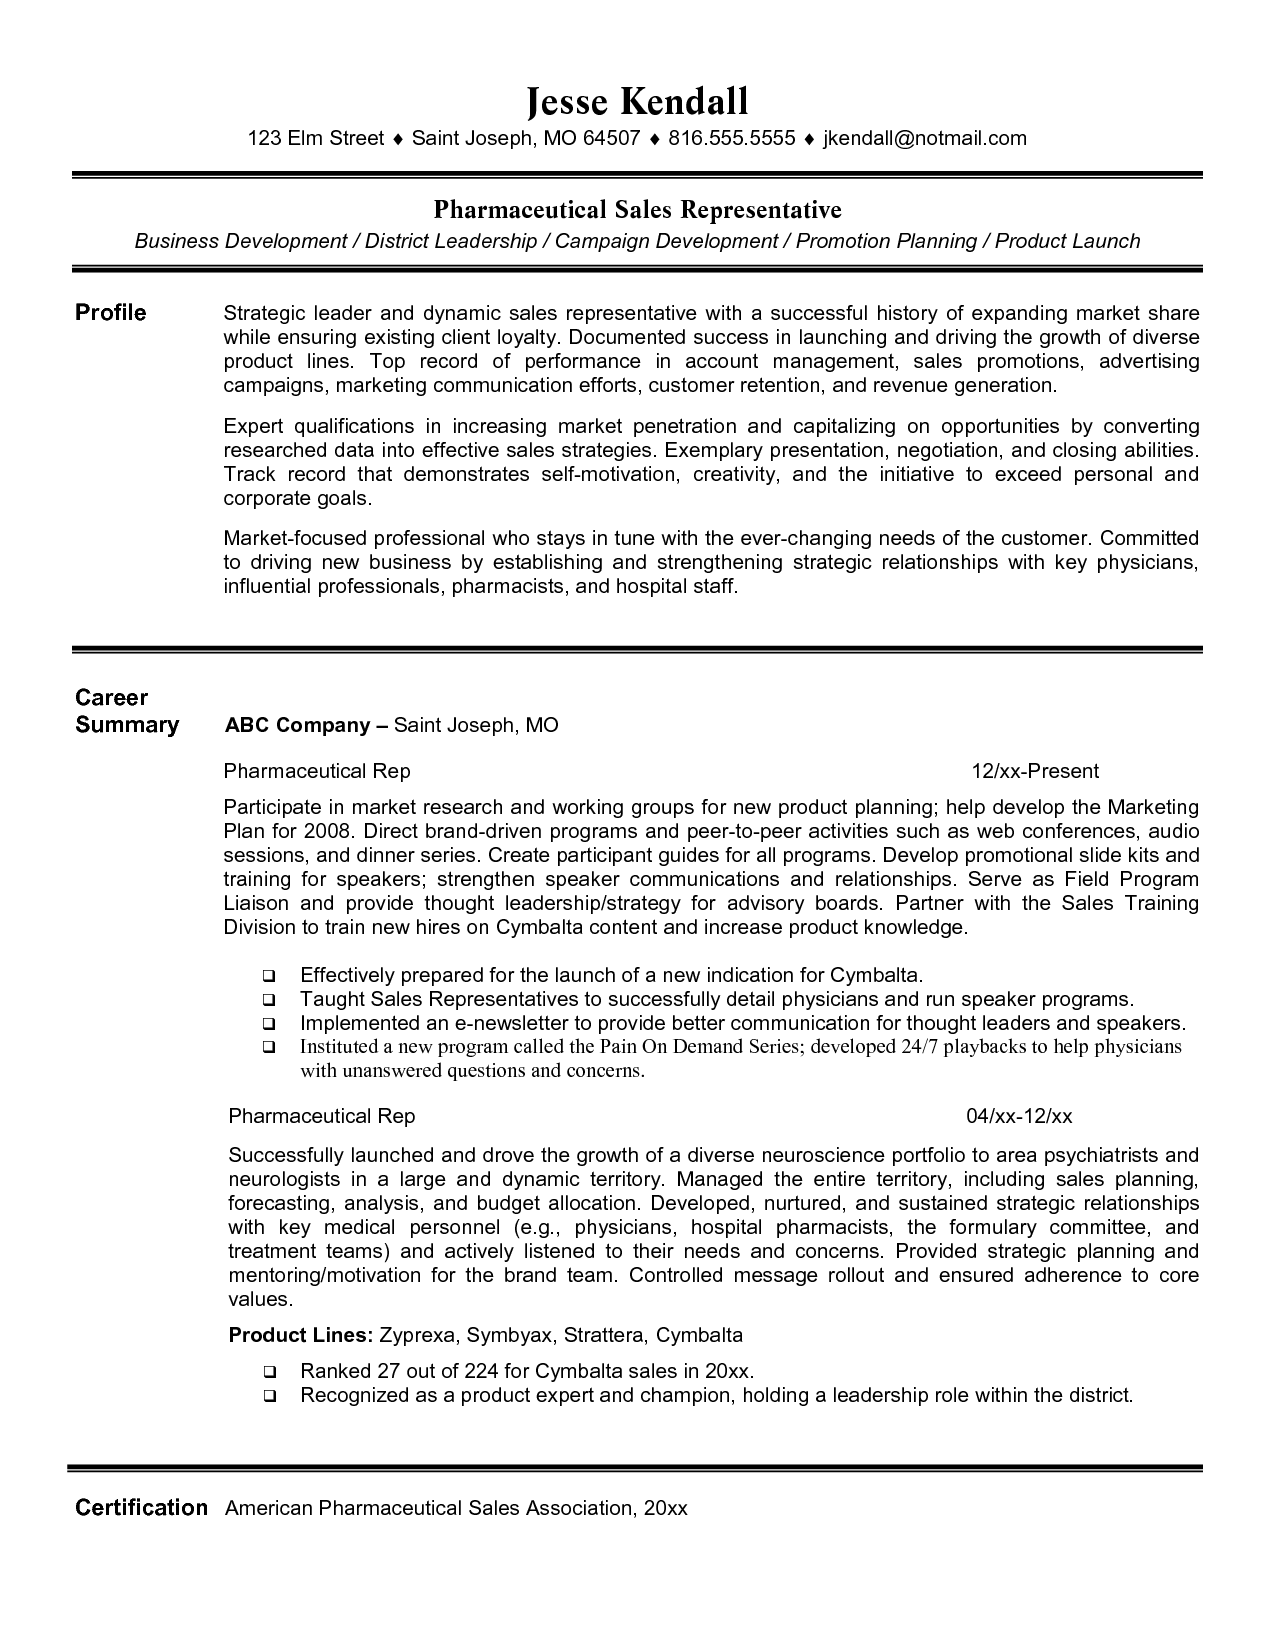 Delightful Pharmaceutical Sales Rep Resume Sample Entry Level Pharmaceutical Sales  Resume Regard To Pharmaceutical Sales Resume Sample